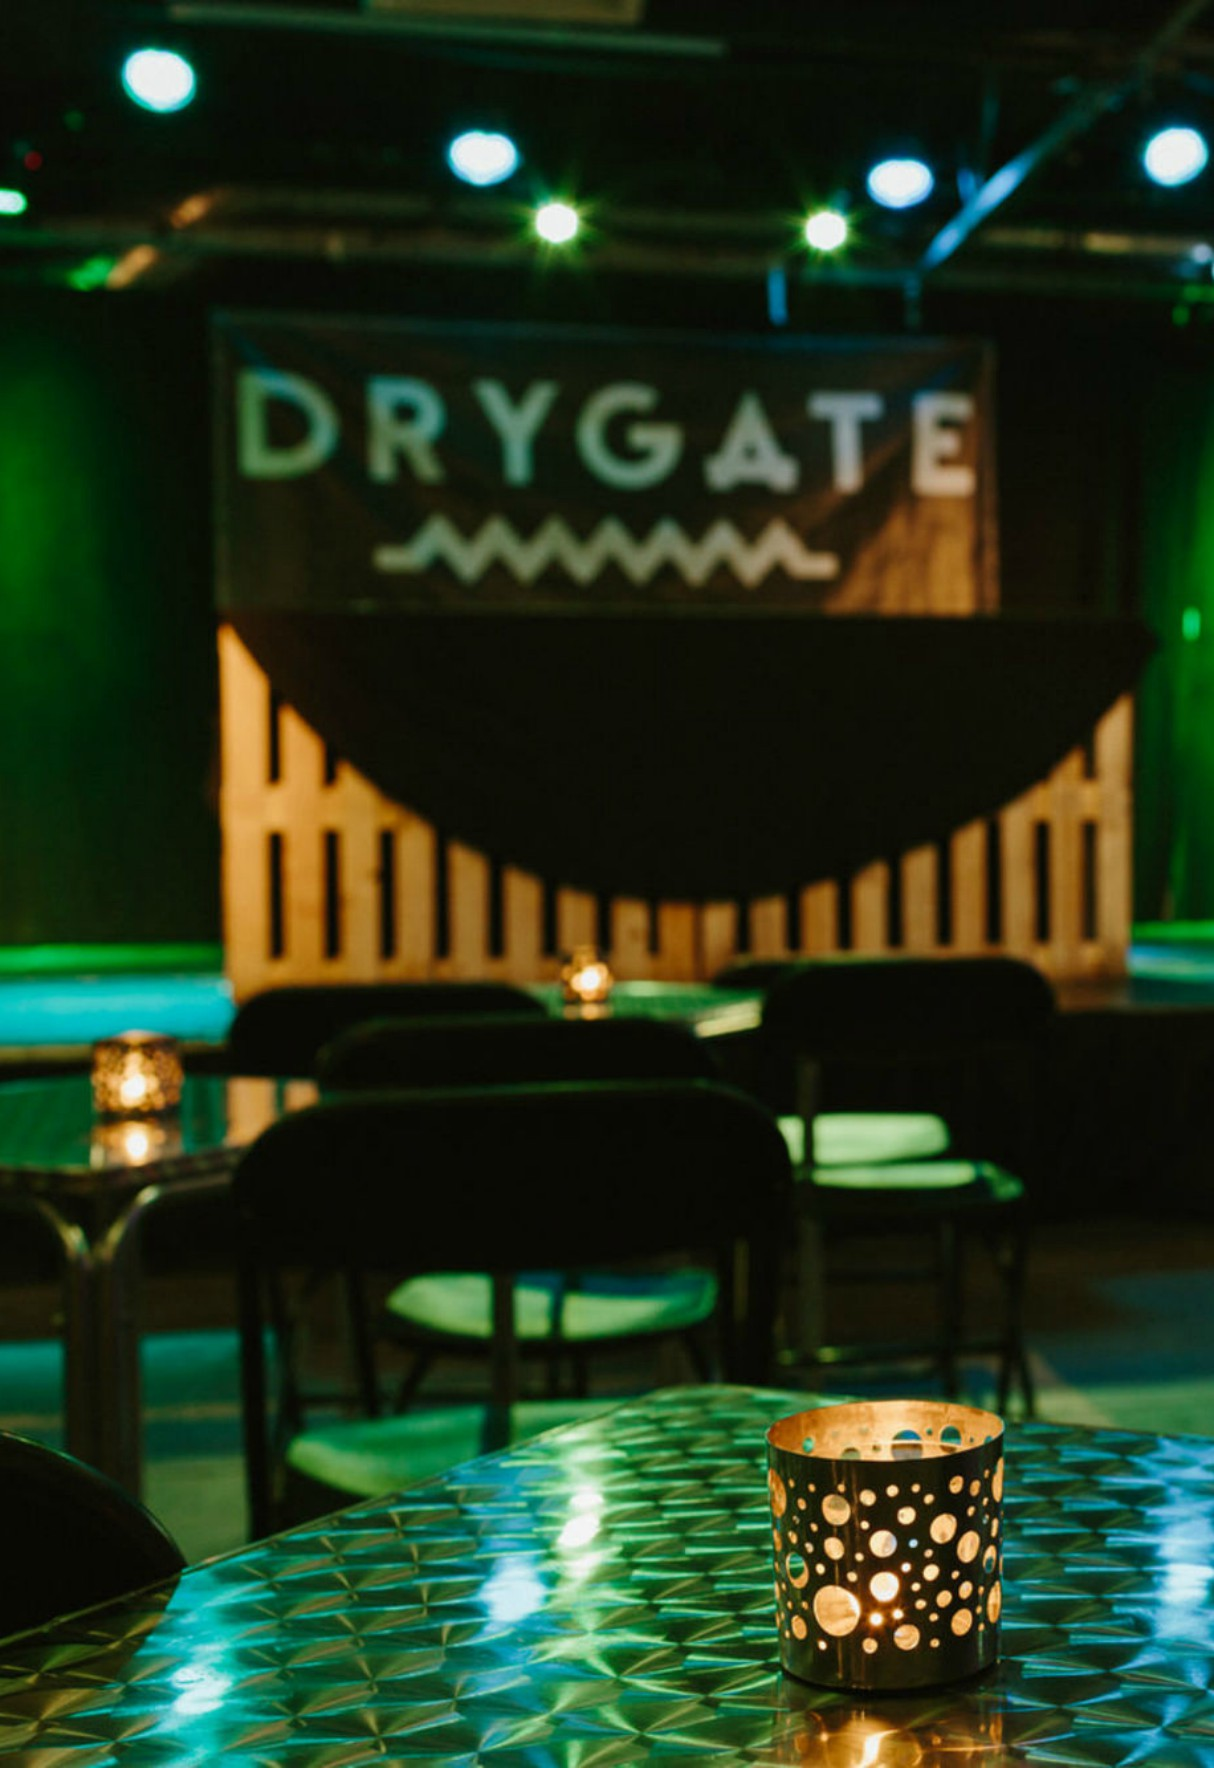 Drygate Launches Virtual Festival You Can Attend from Your Living Room 2